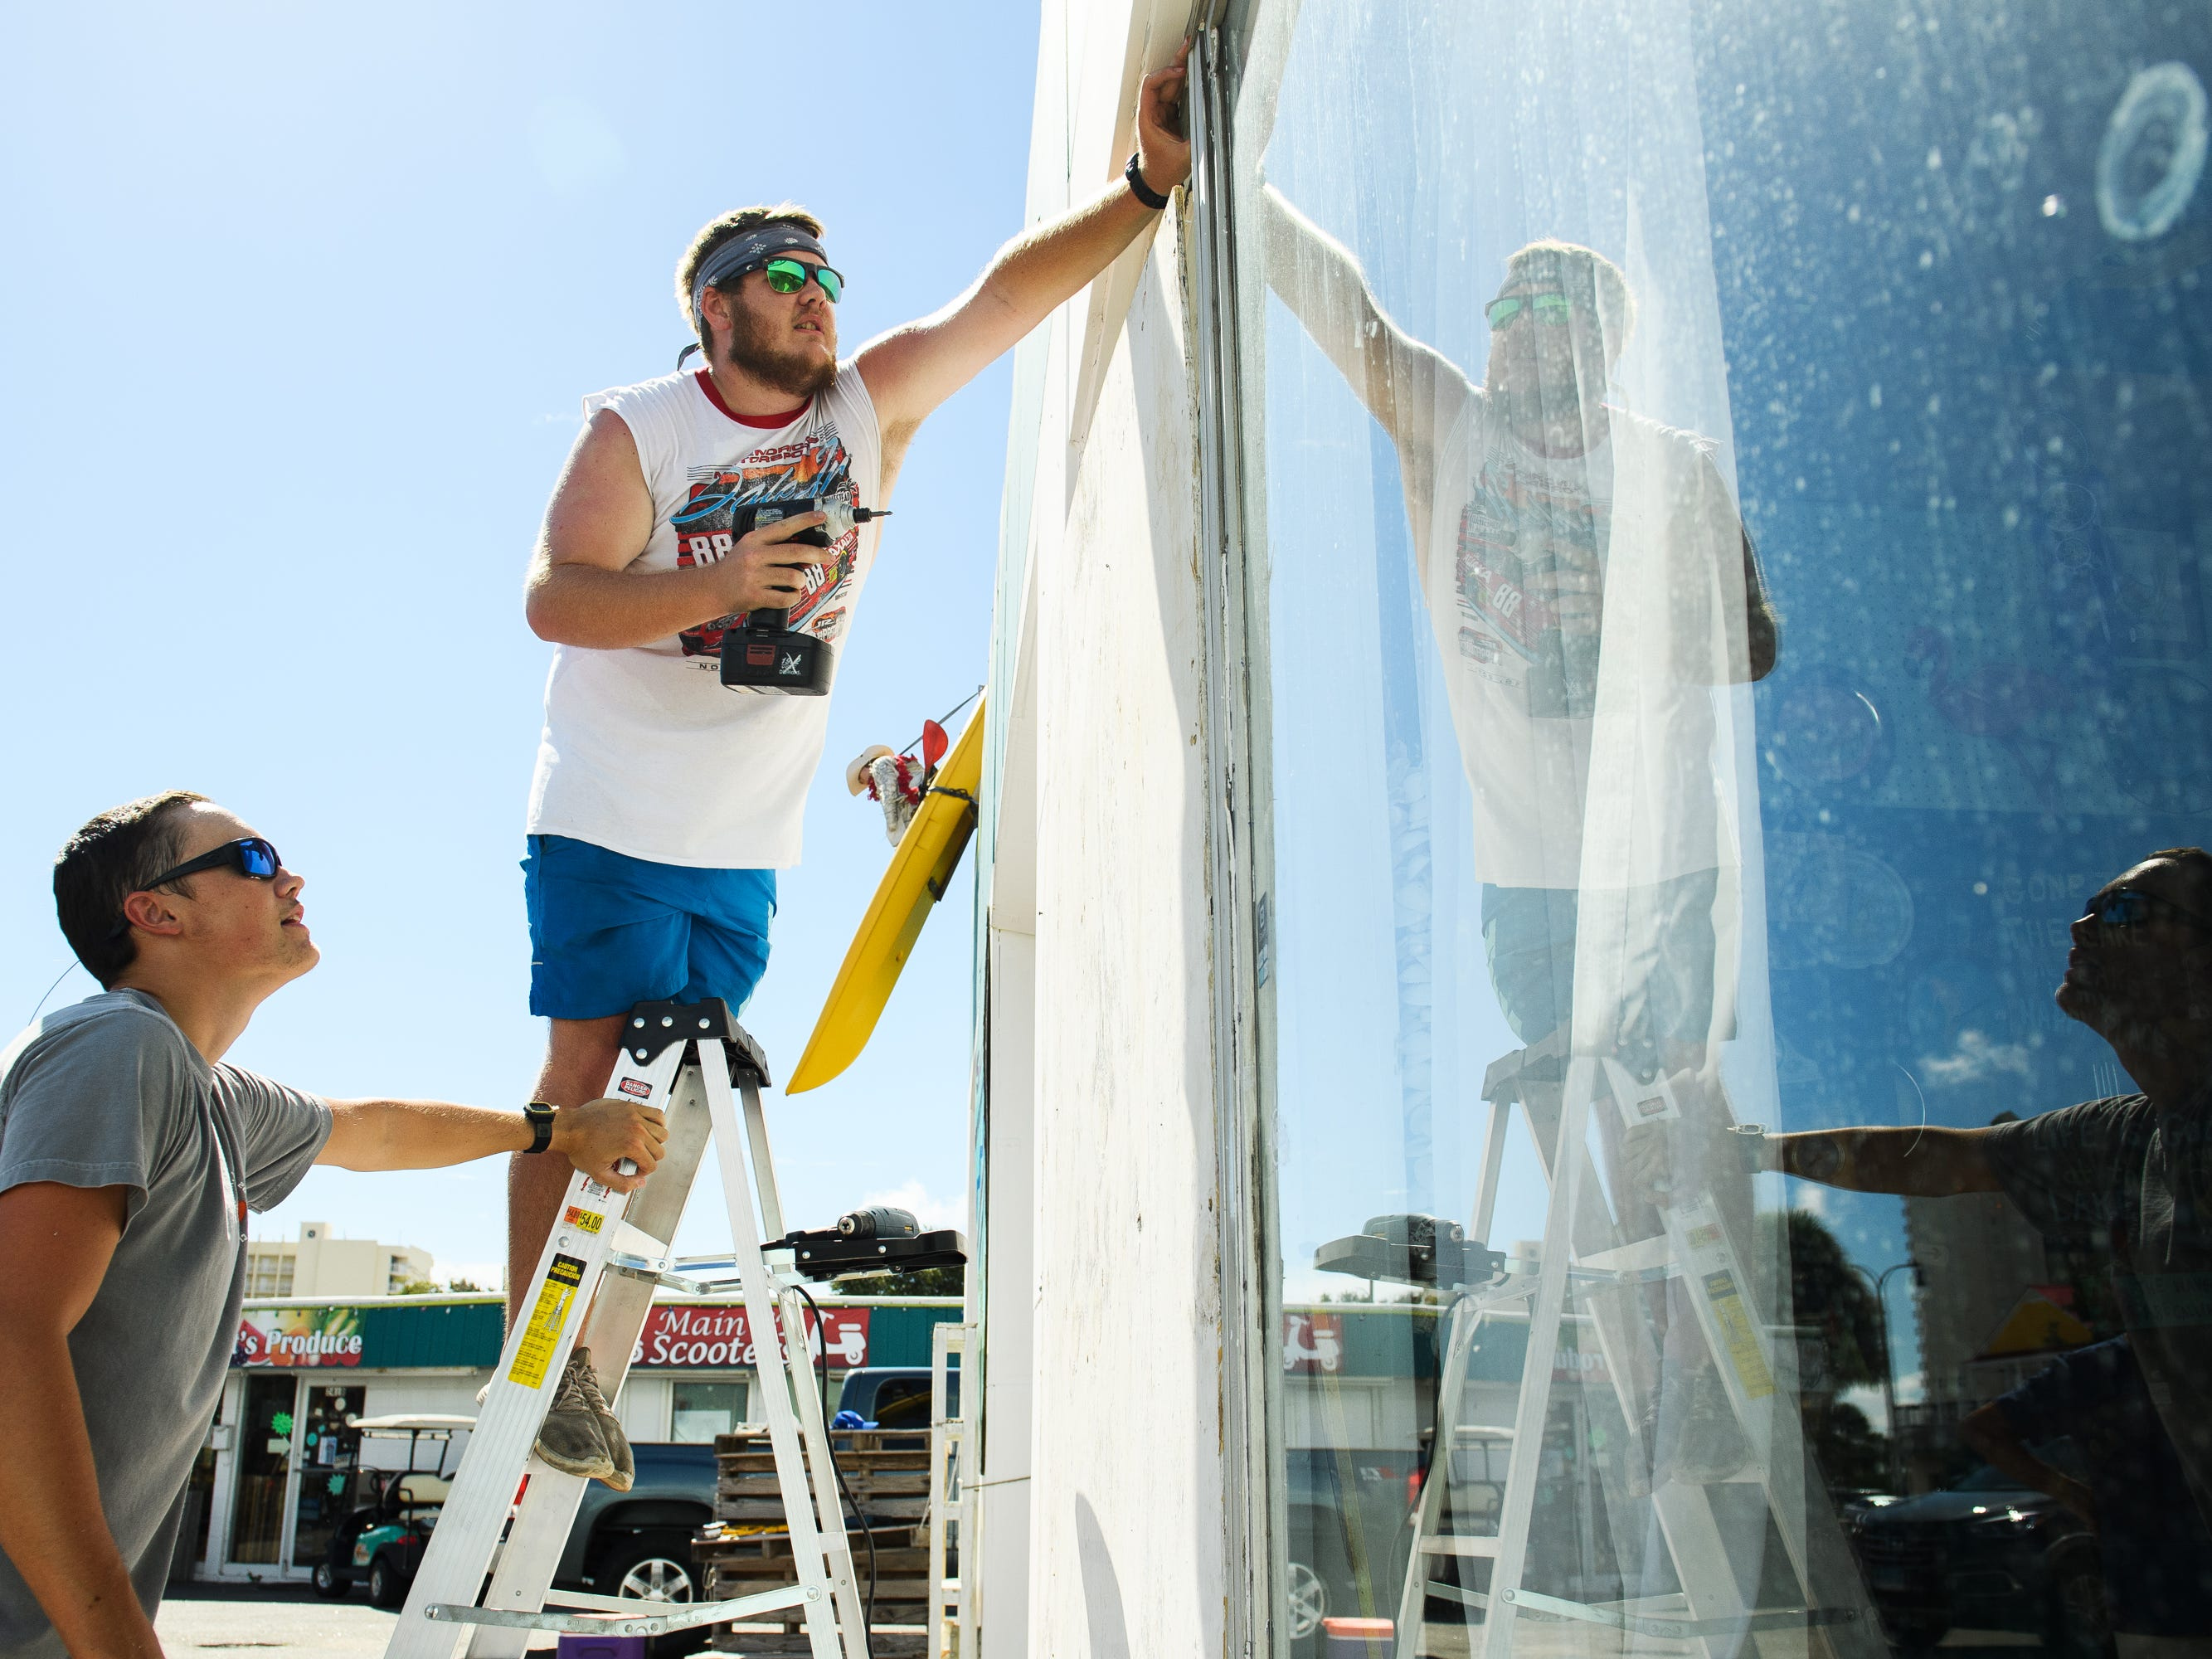 Hunter Cook and Austin Benton board up windows at their grandfather's business, The Wildflower, in North Myrtle Beach on Tuesday, Sept. 11, 2018.